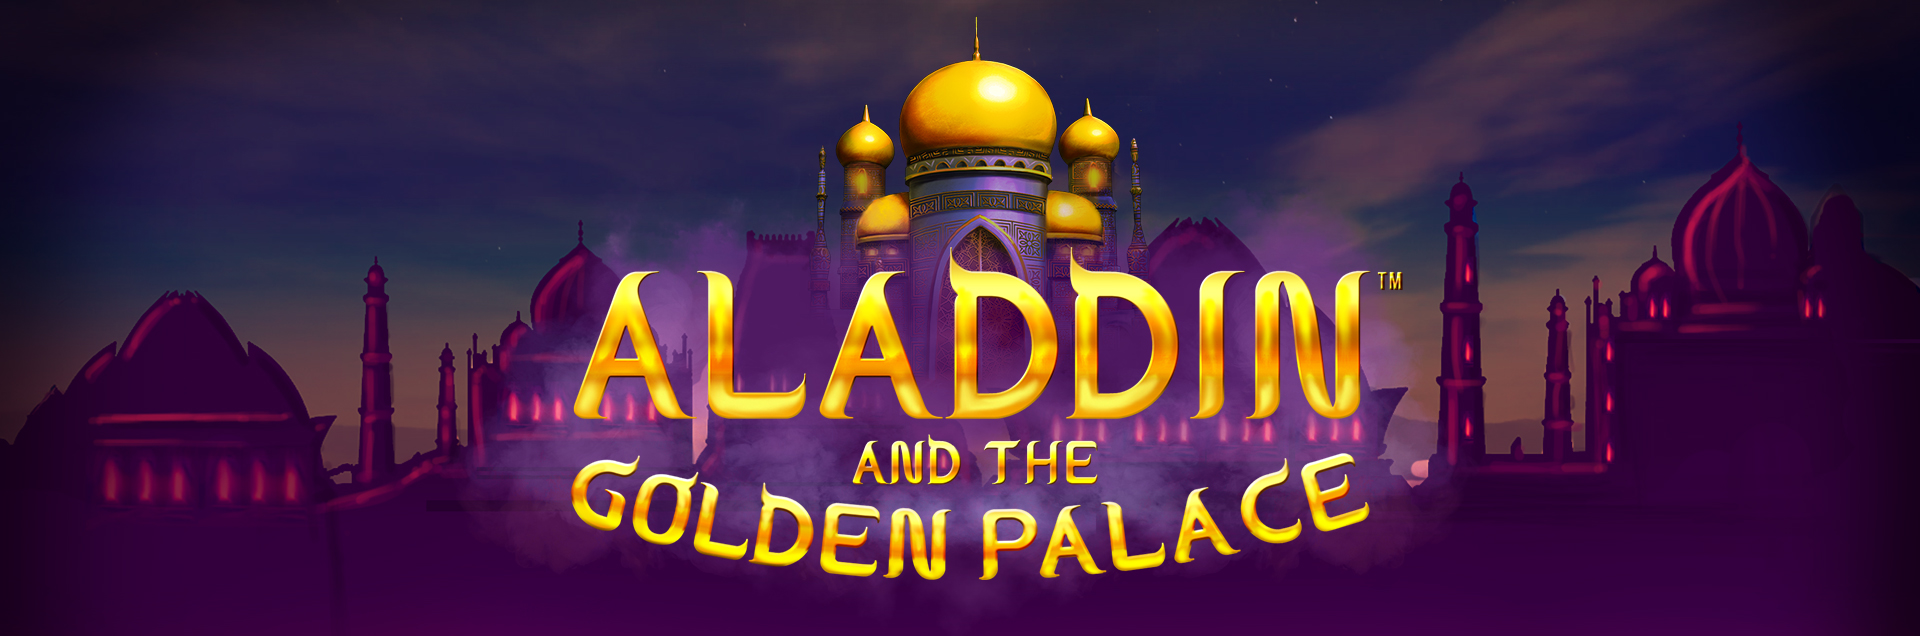 Aladdin and the Golden Palace header banner